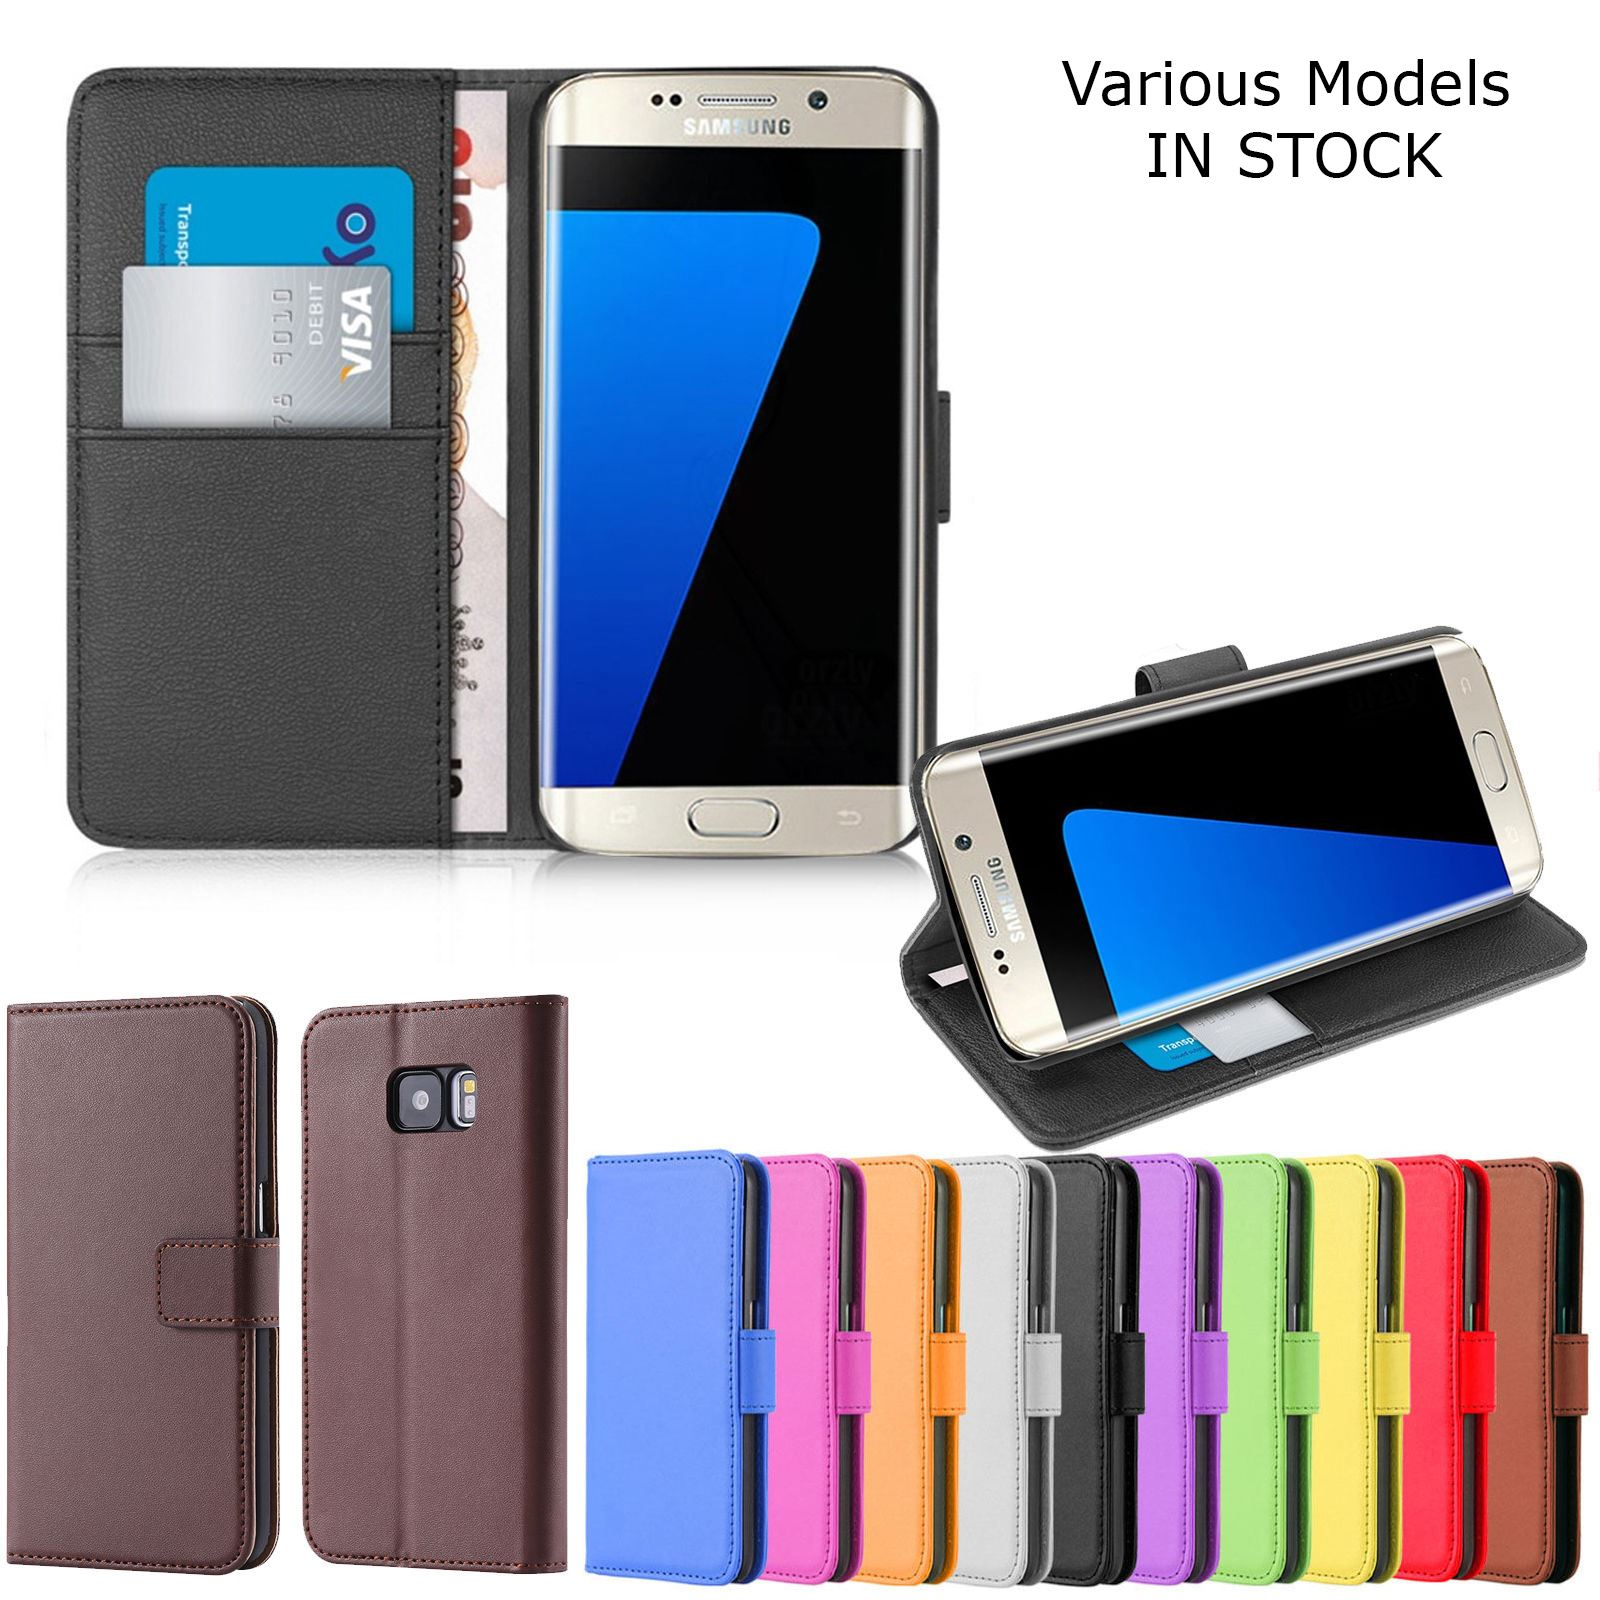 online retailer a5a77 1100f Details about Leather Book Wallet Magnetic Flip Phone Case Cover for  Samsung Galaxy S8 & More